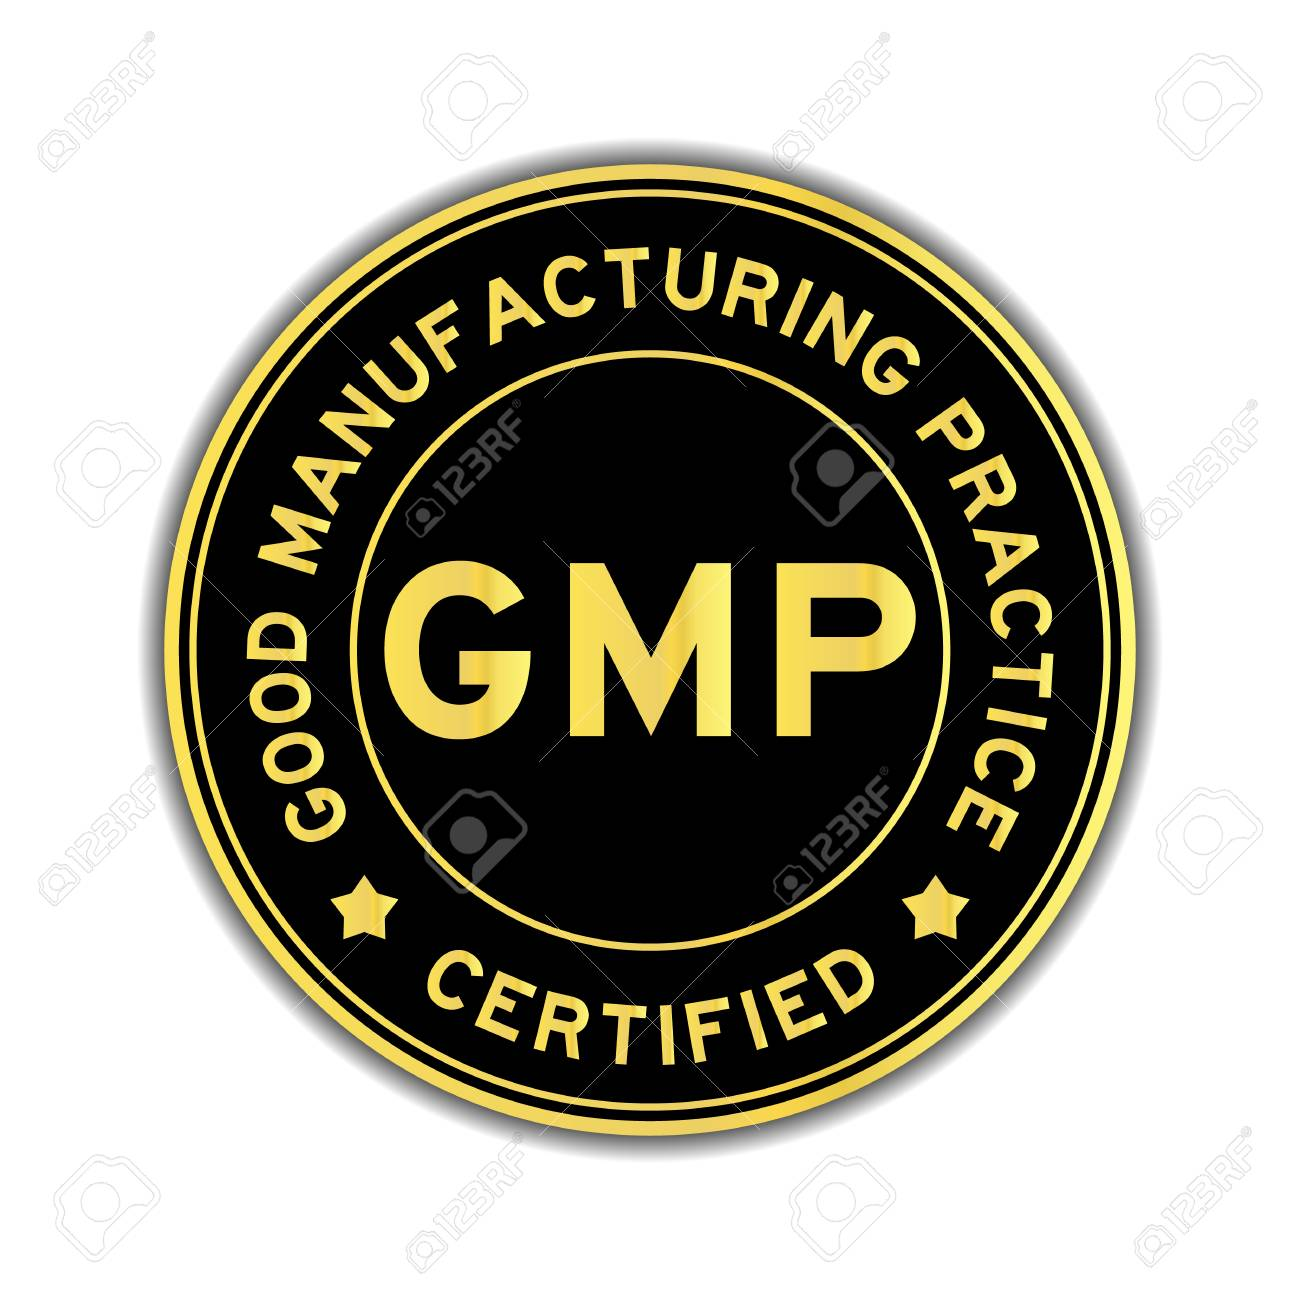 Black and gold color GMP (Good Manufacturing Practice) certified round sticker on white background - 83557916